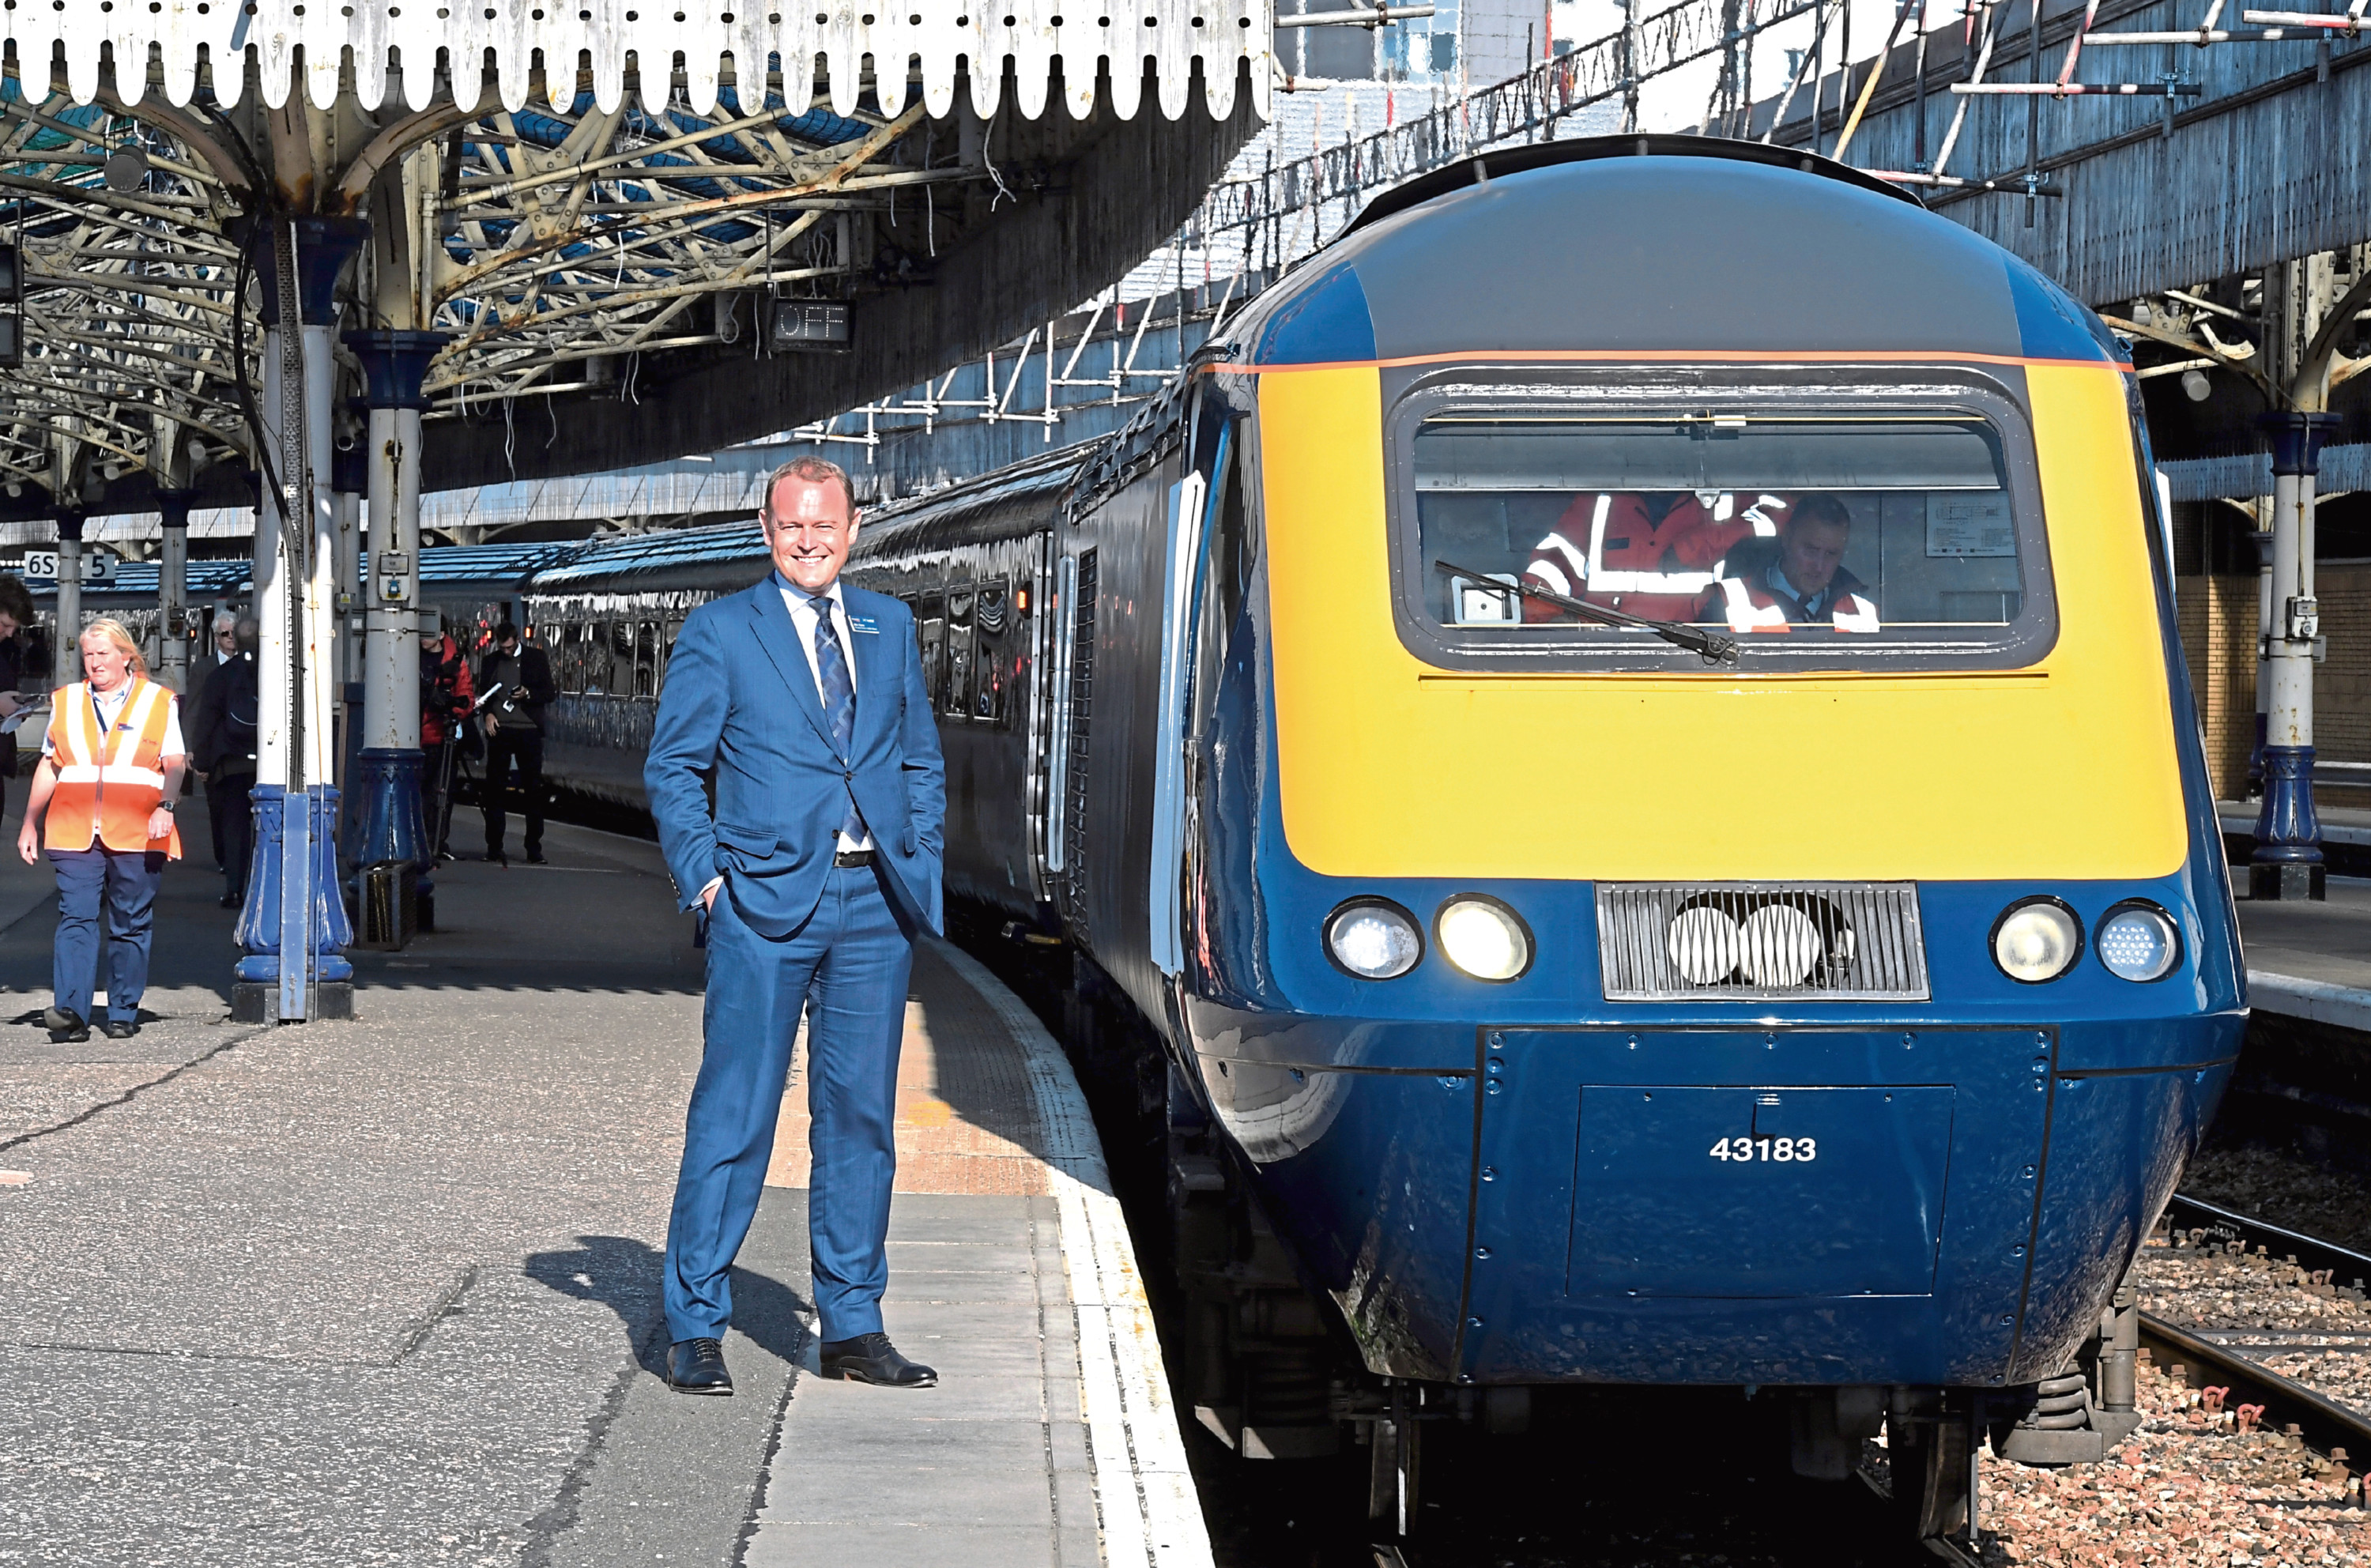 ScotRail managing director Alex Hynes has apologised to customers